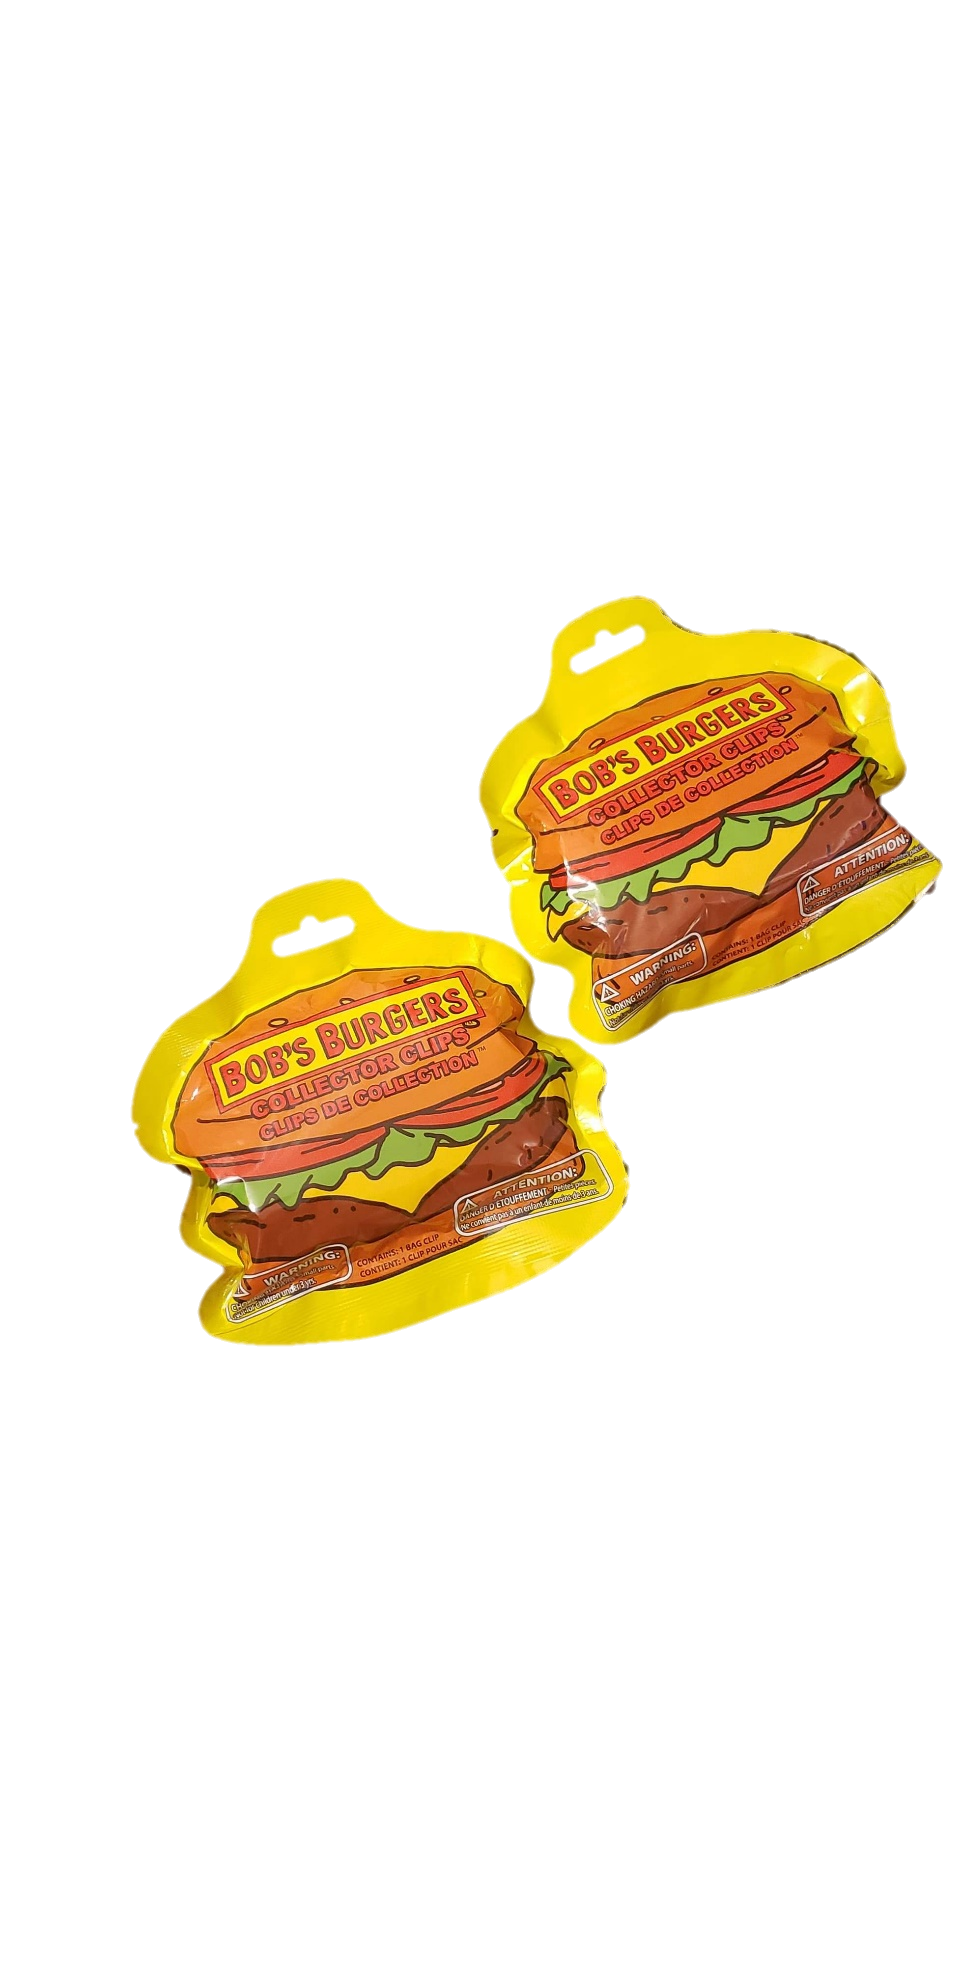 Bob's Burgers Series 1 Collector Clips Blind Bag - 2 Pack